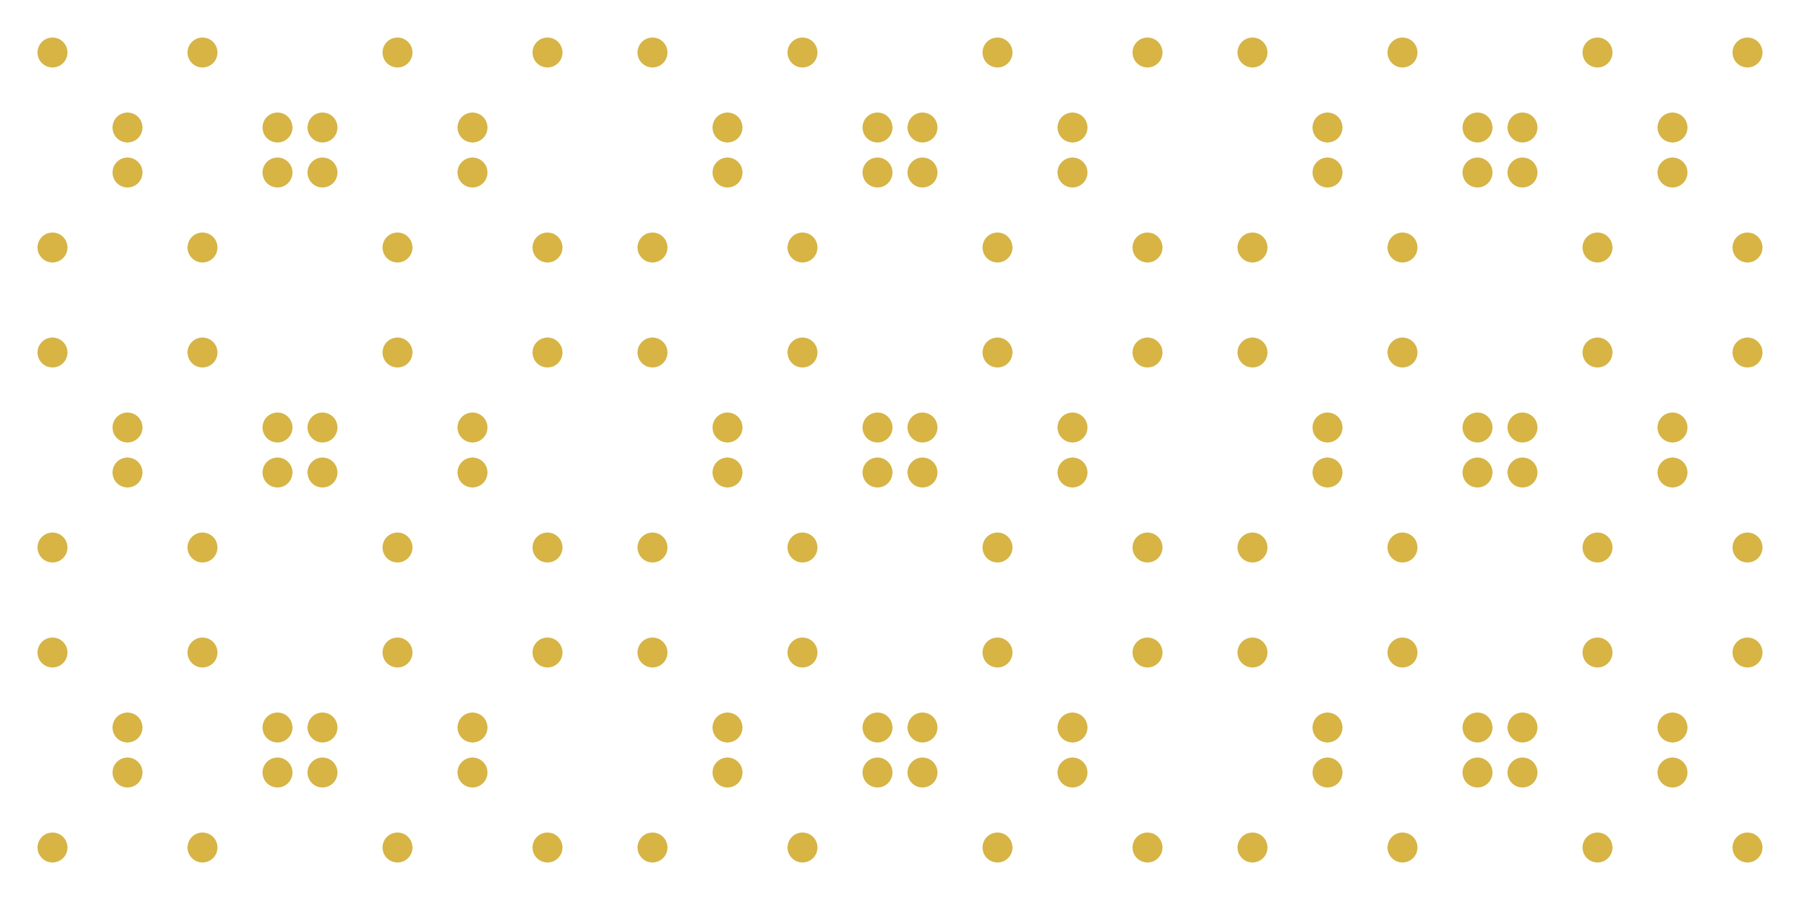 Gold Polka Dots Wallpaper Images Pictures   Becuo 1800x900